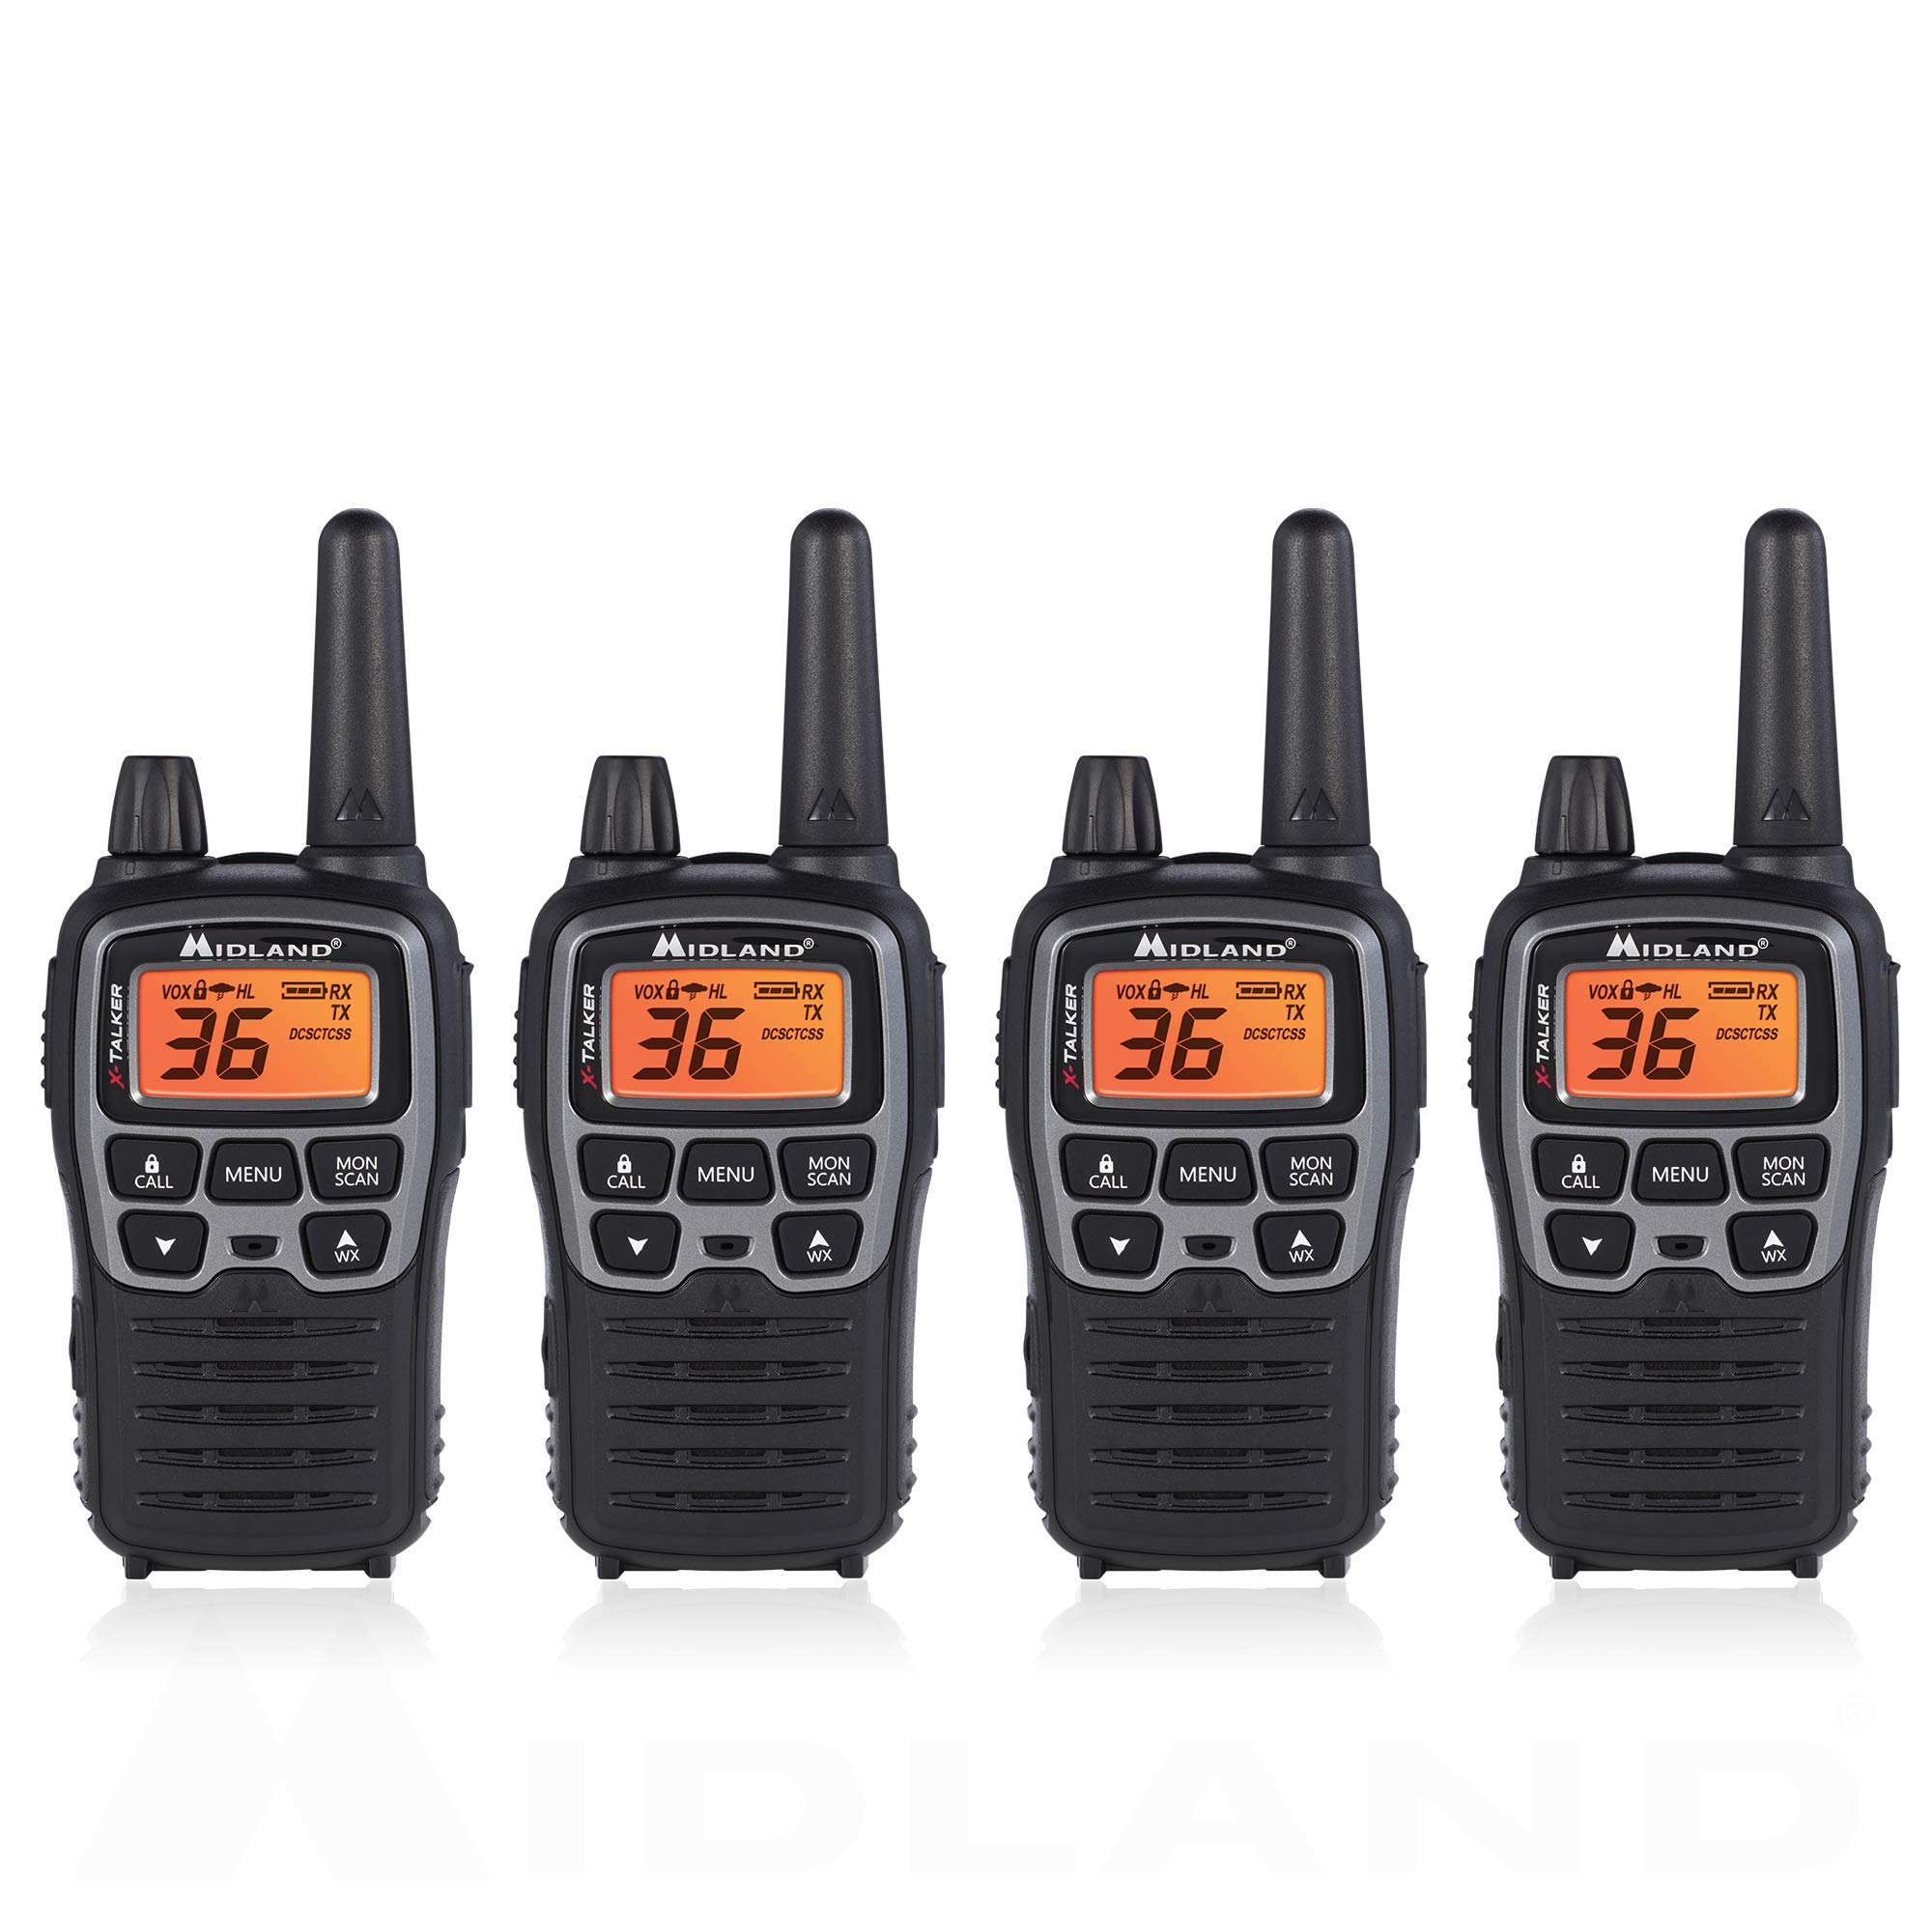 Midland T71VP3 36 Channel FRS Two-Way Radio - Up to 38 Mile Range Walkie Talkie - Black/Silver (Pack of 4) by Midland